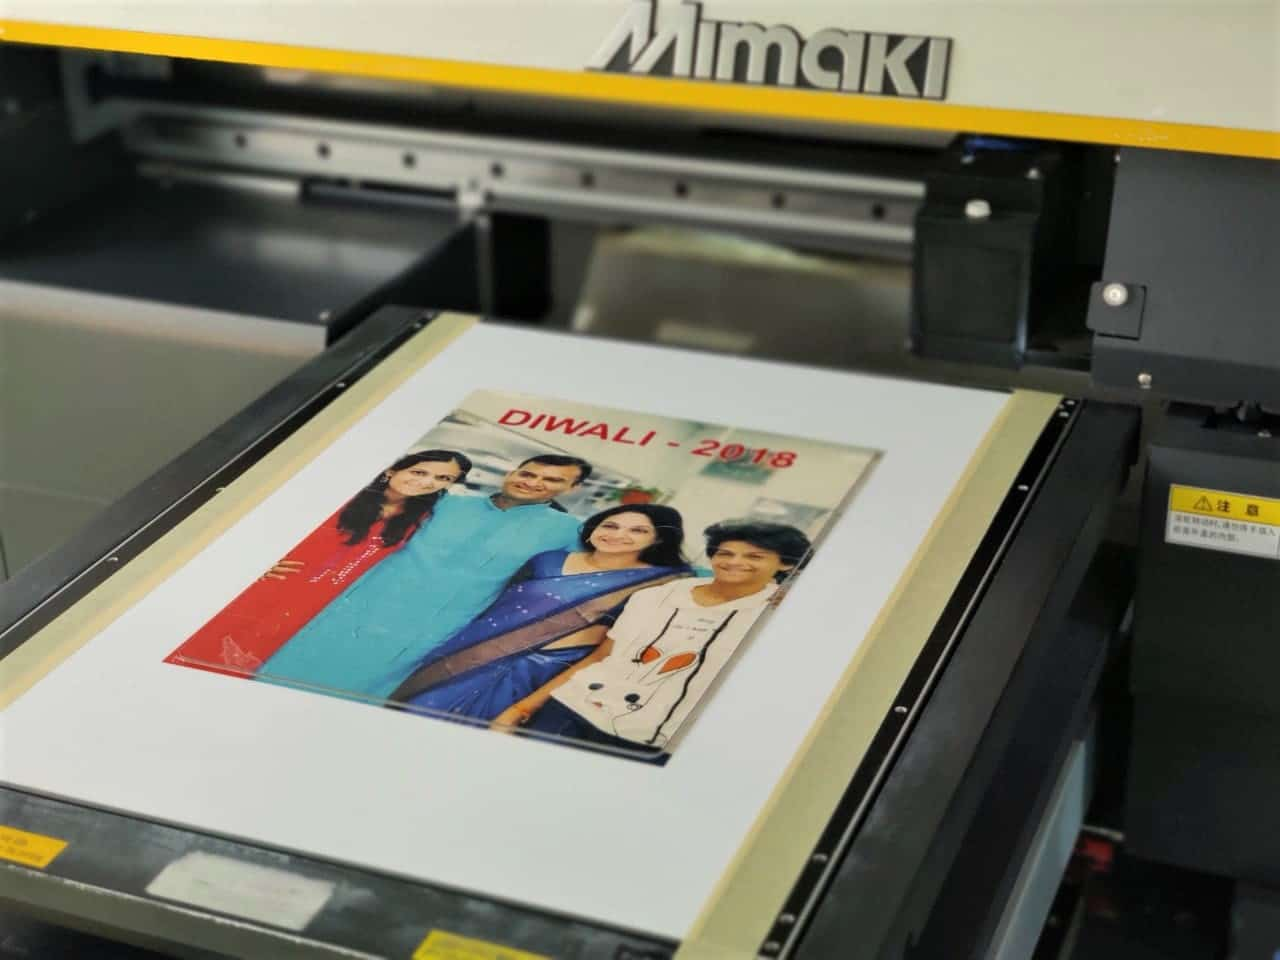 Mimaki Ultra Violet flatbed printer printing a family photo on a die cut jigsaw puzzle to create a great personalised gift